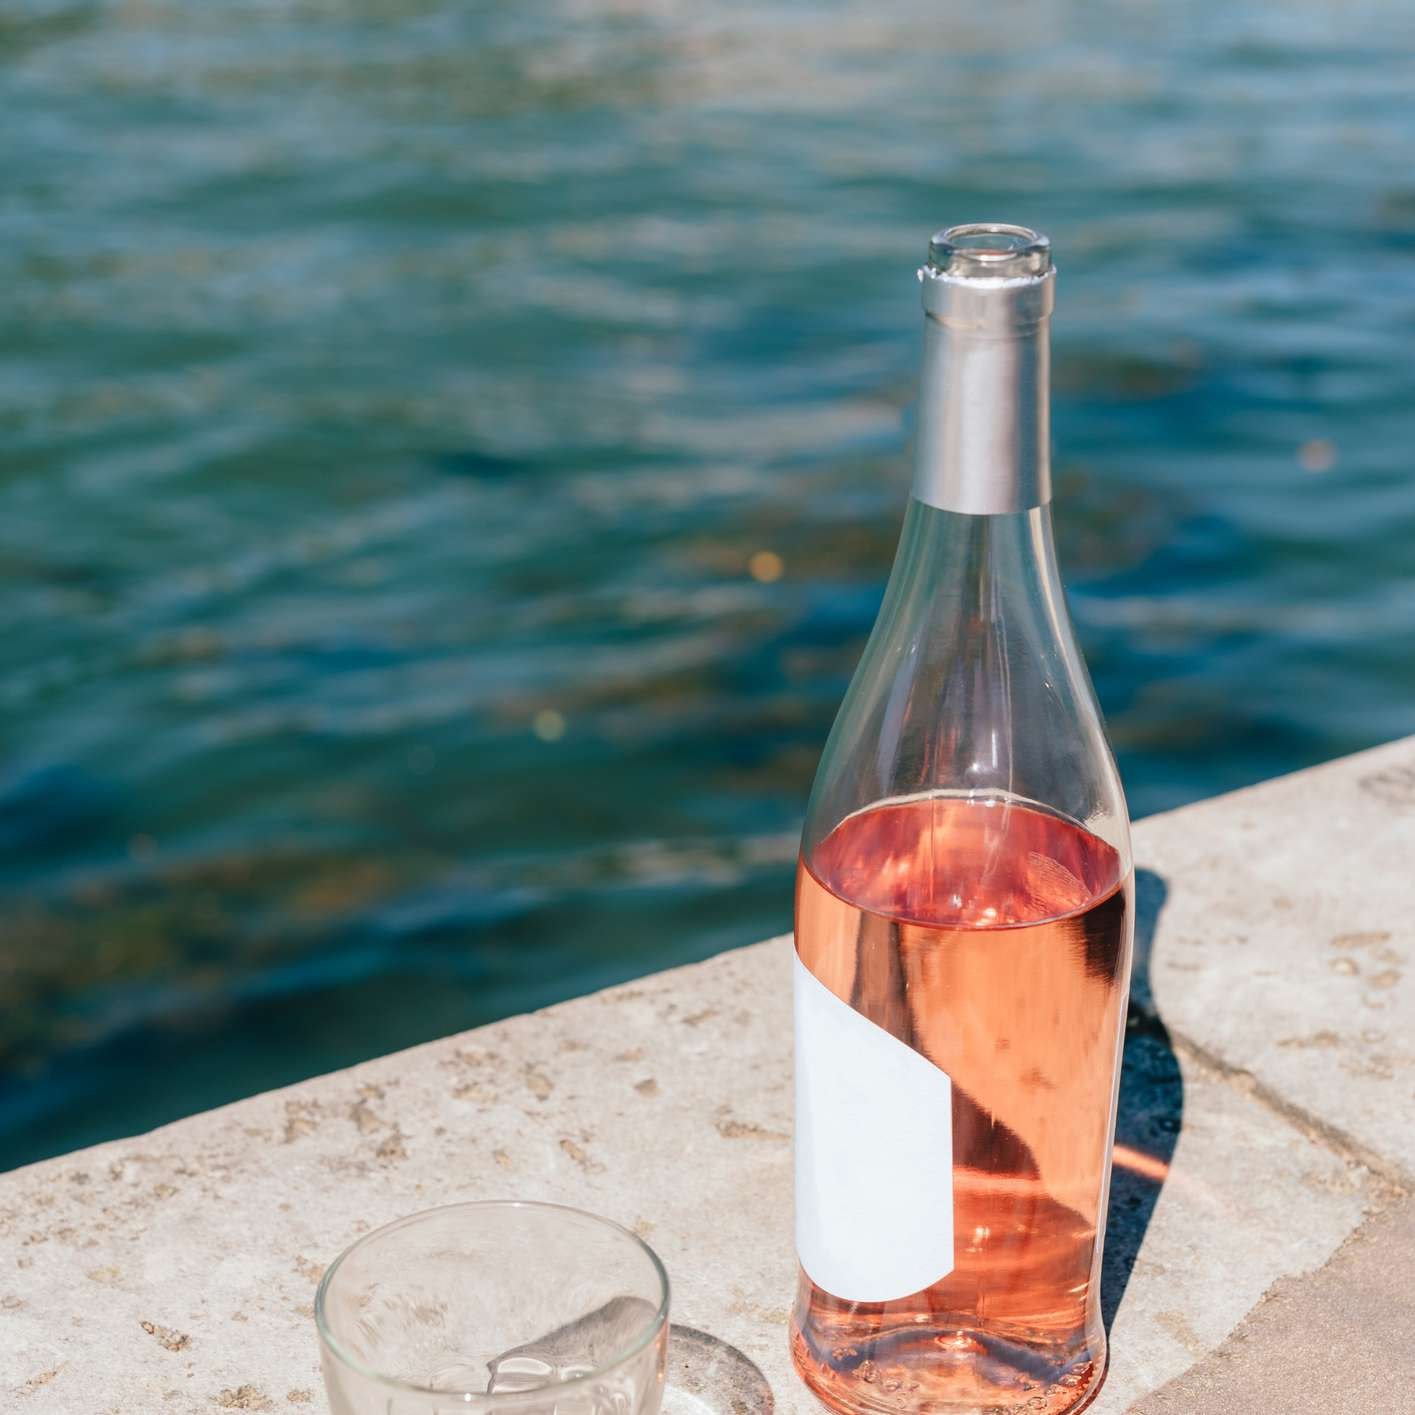 Bottle of rosé with a glass on pool ledge.